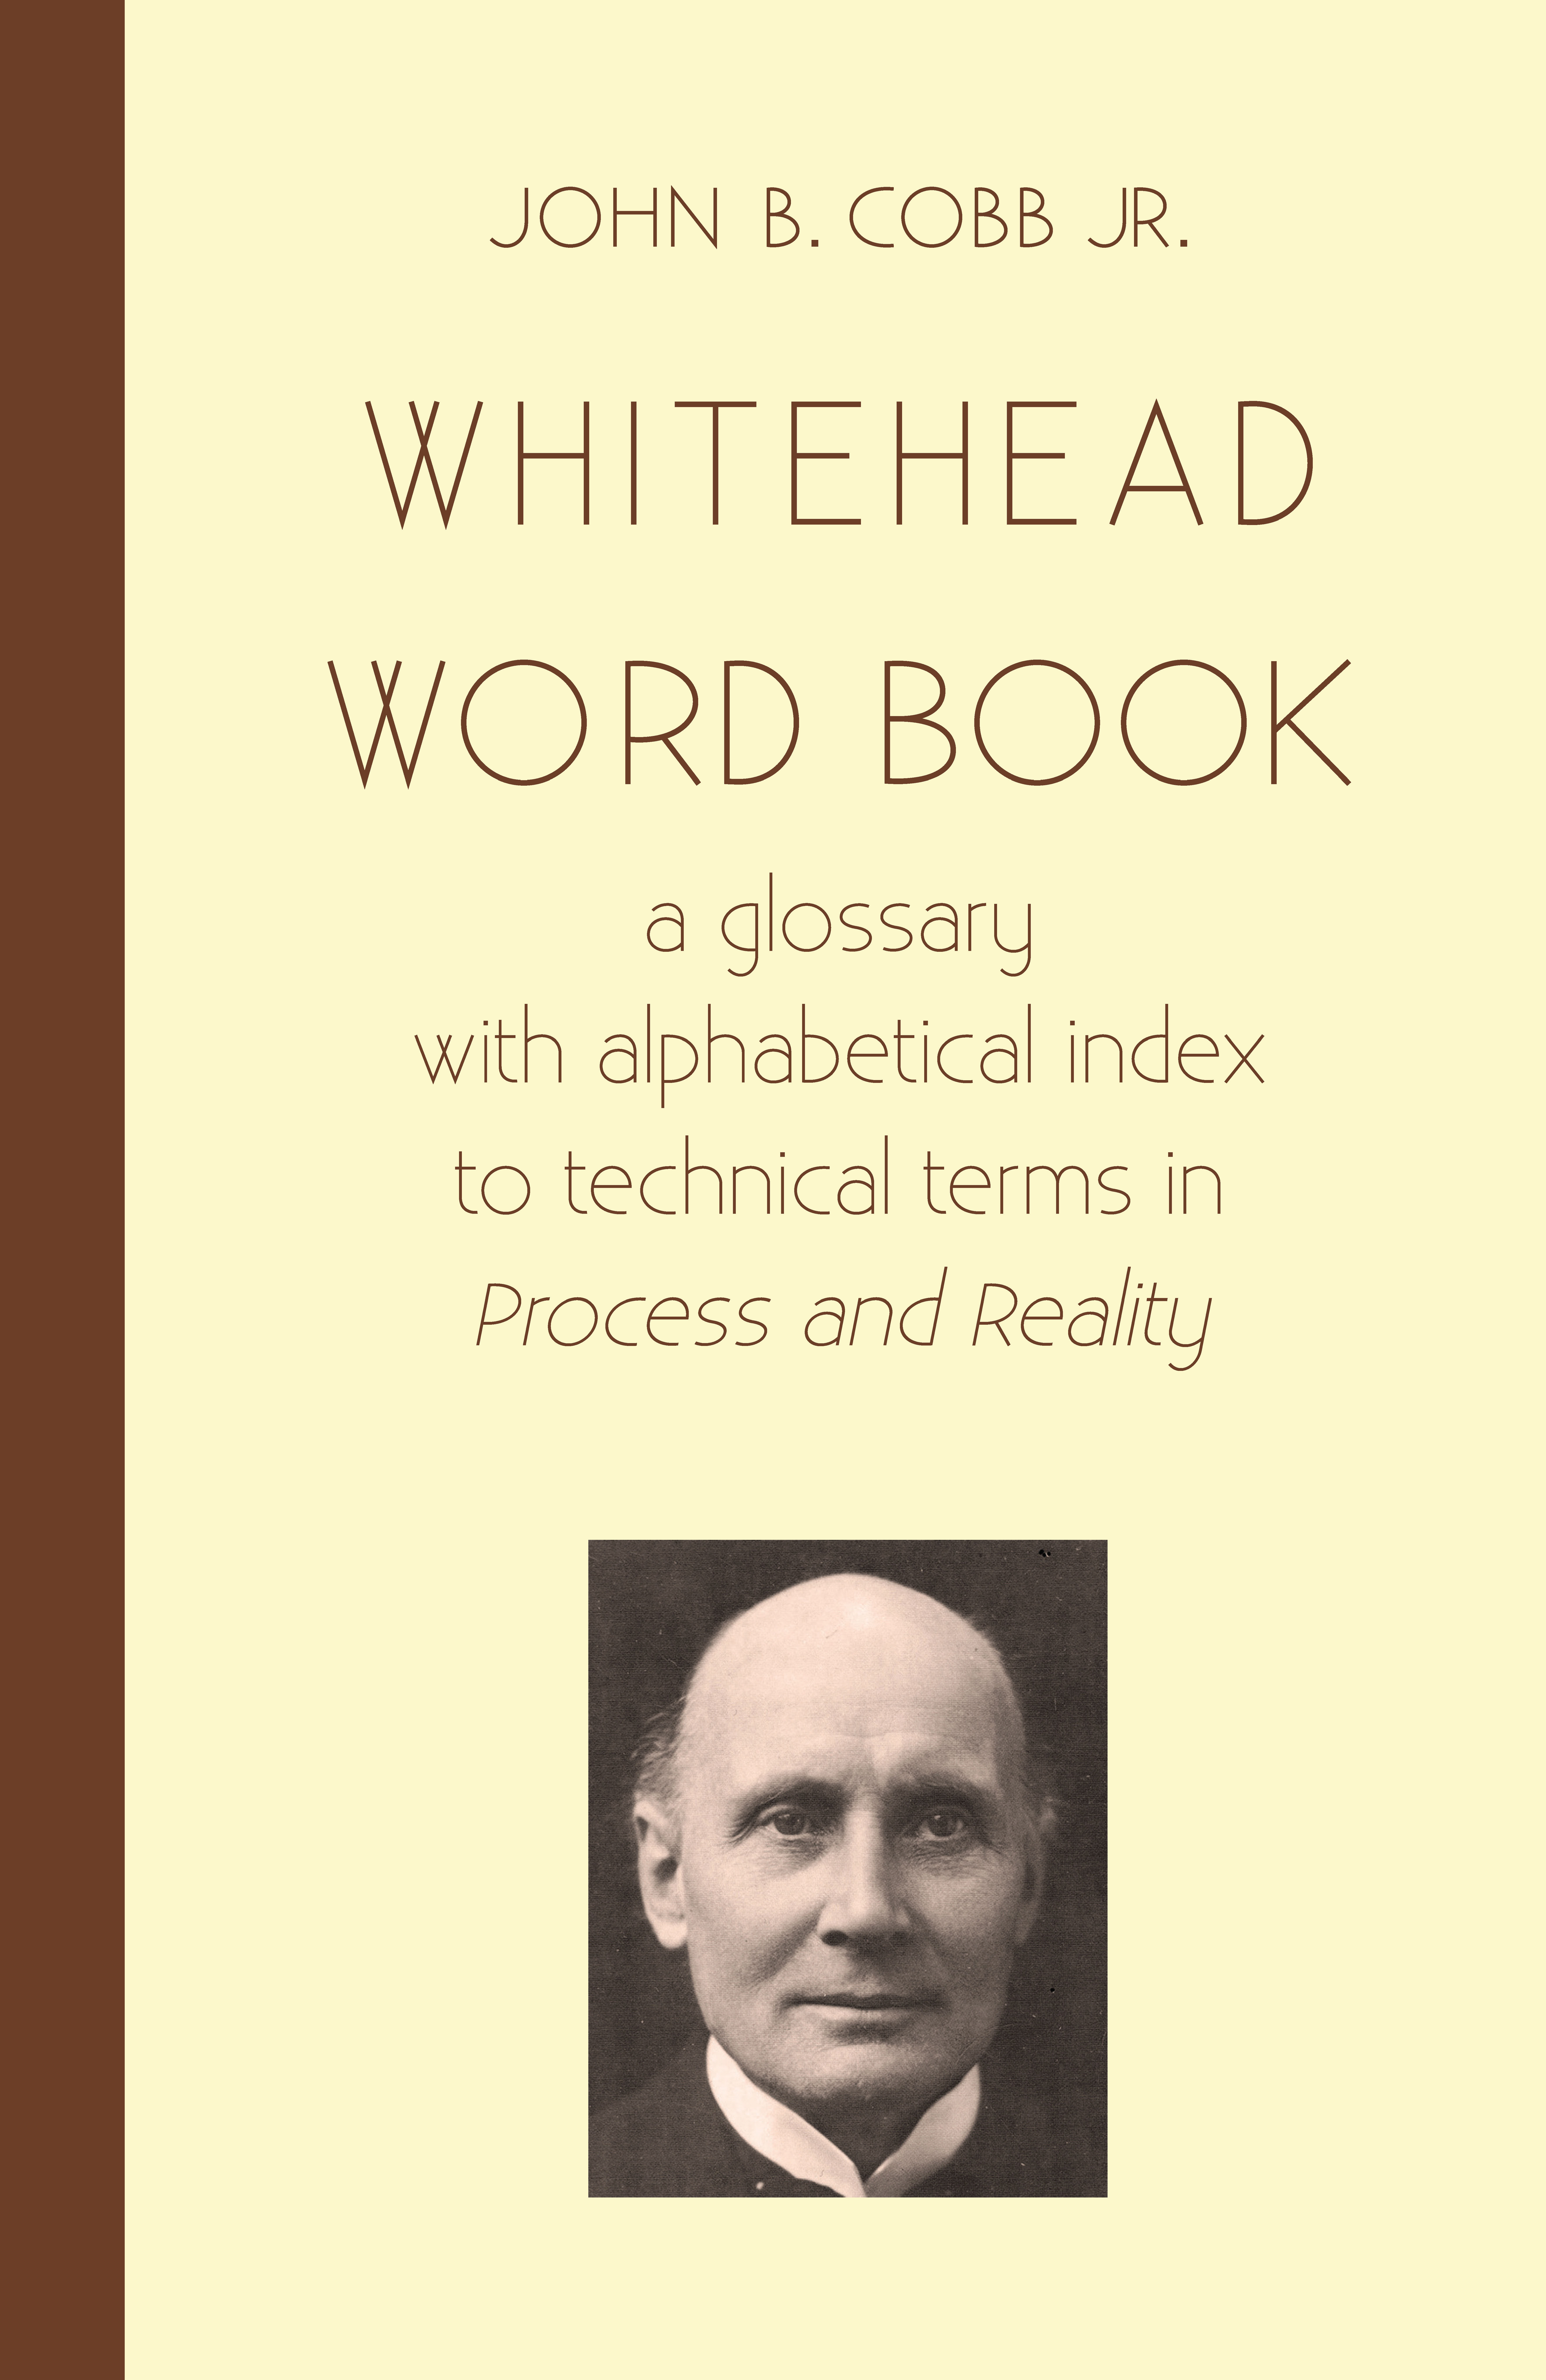 Whitehead Word Book